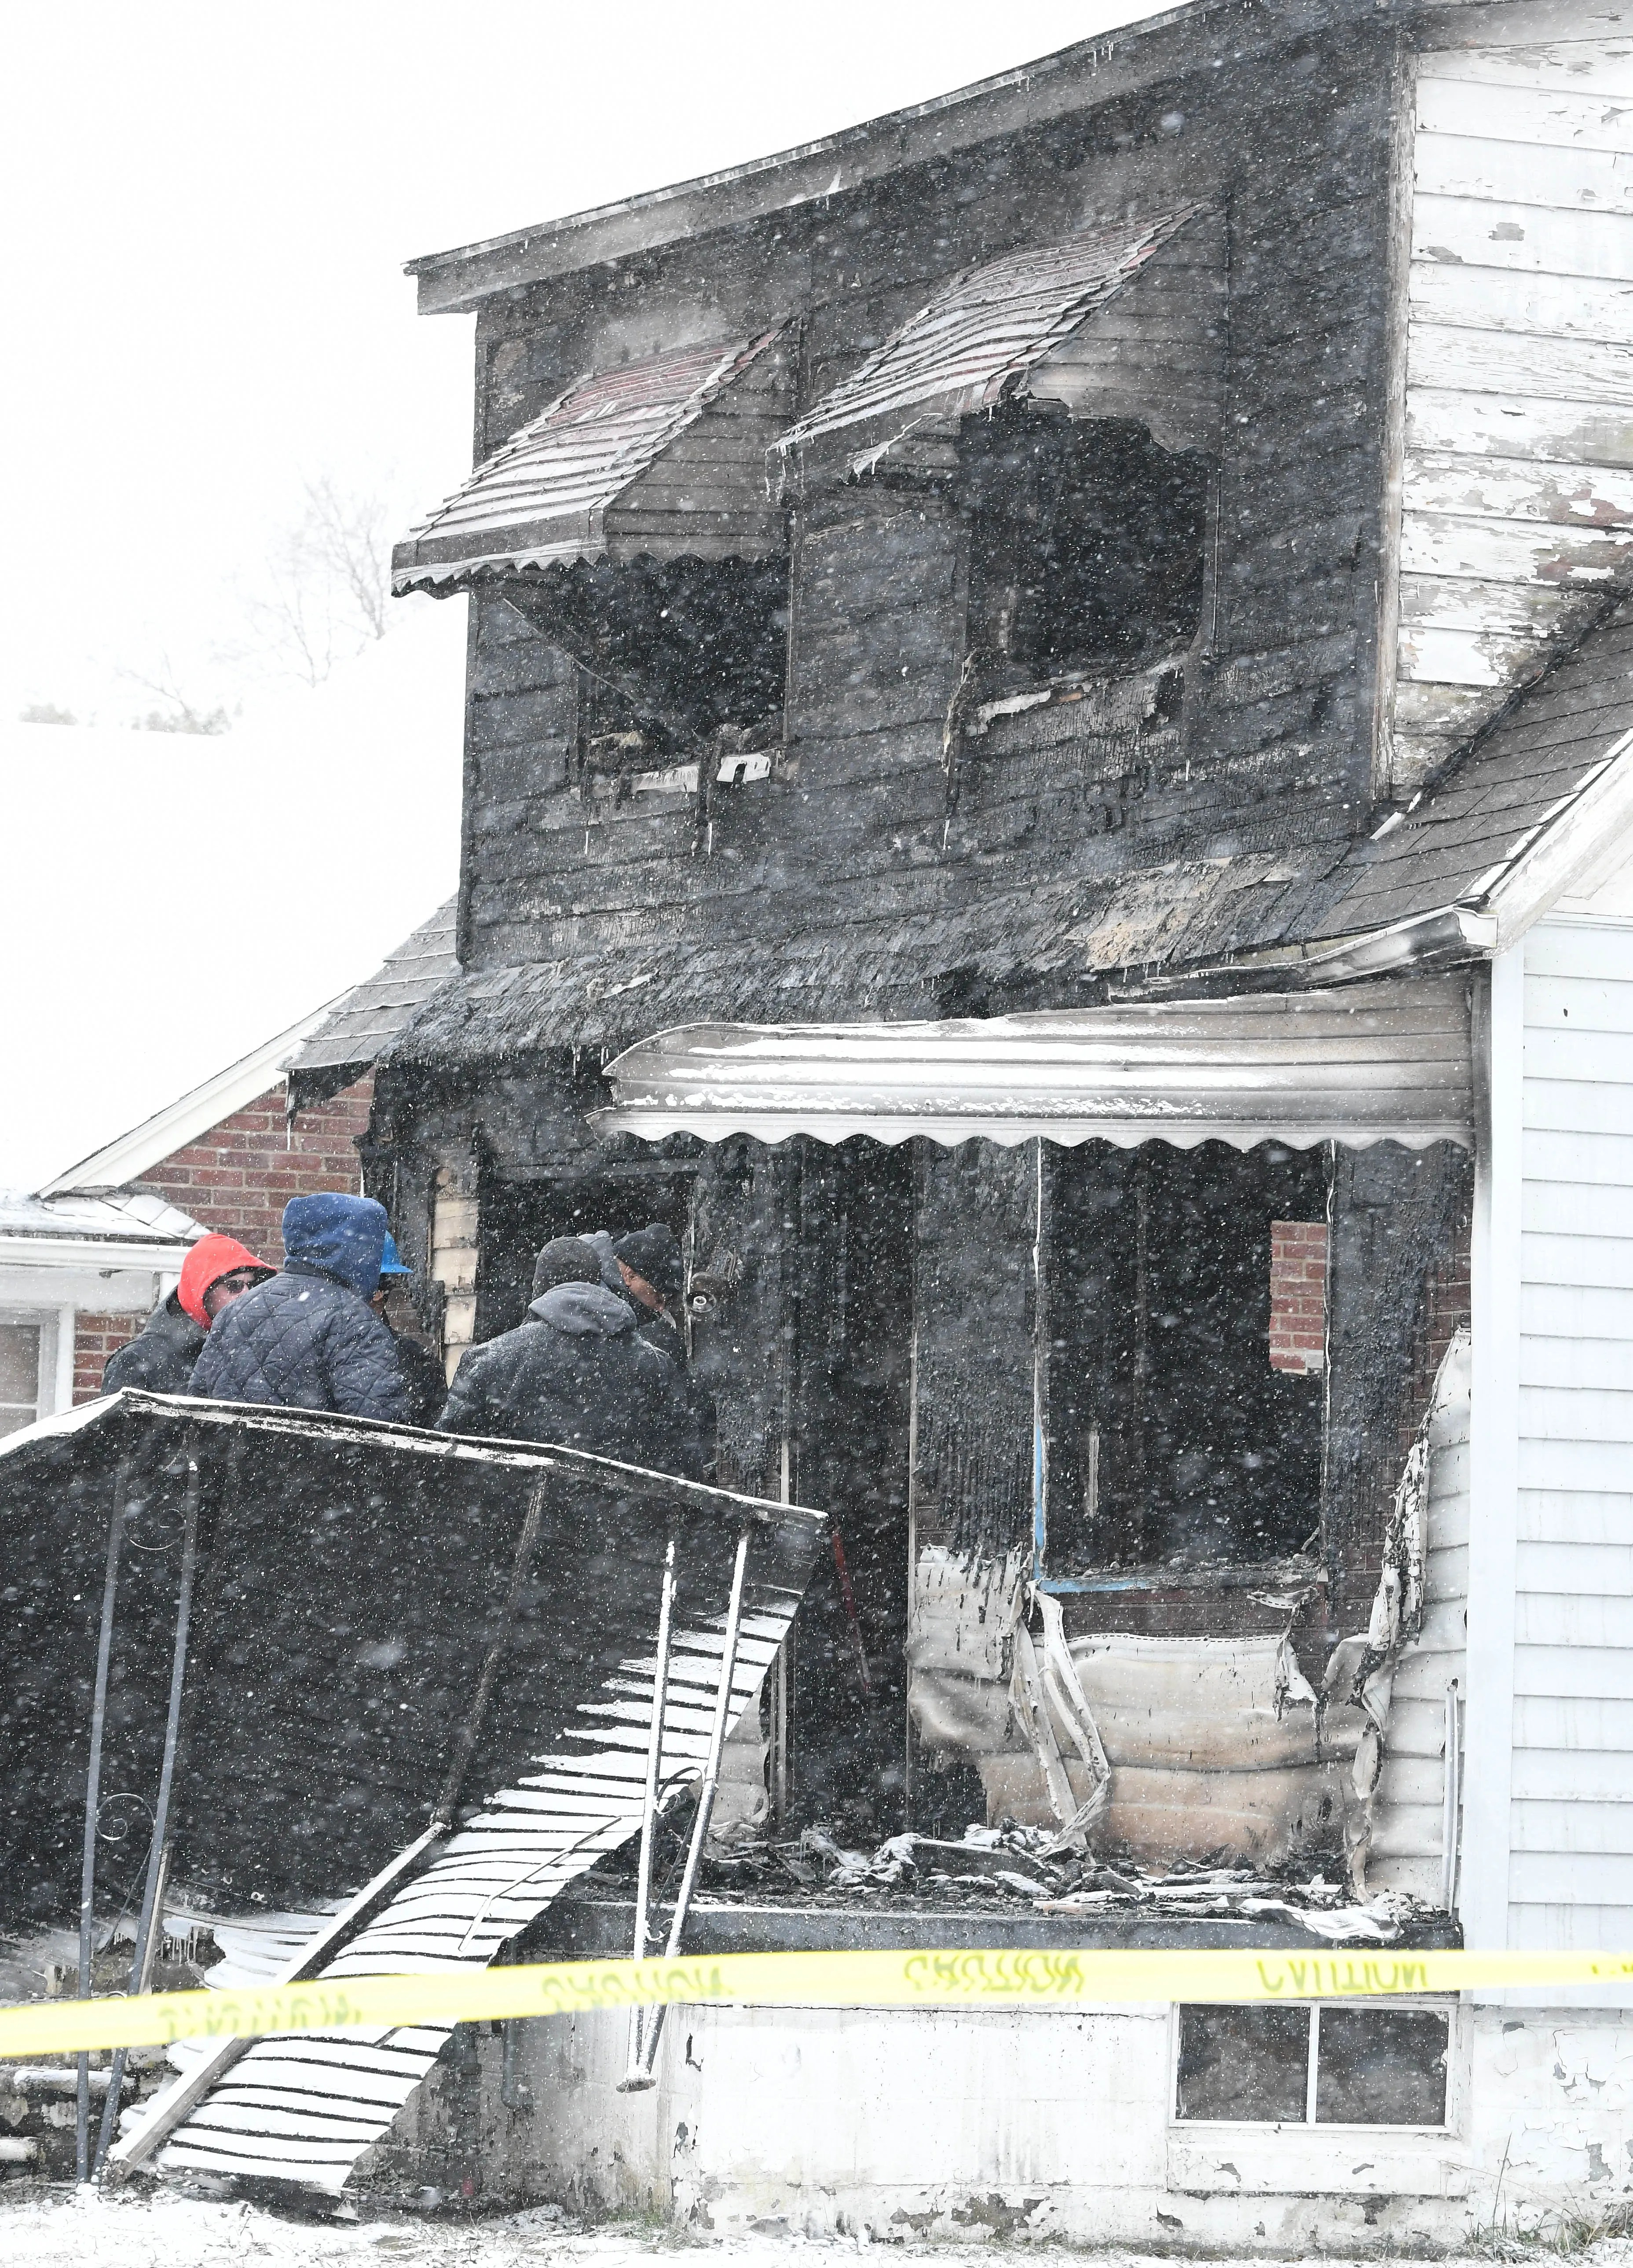 Fire at a house in the 20000 block of Helen Ave. takes two boys lives in Detroit, Michigan  on December 25, 2020.